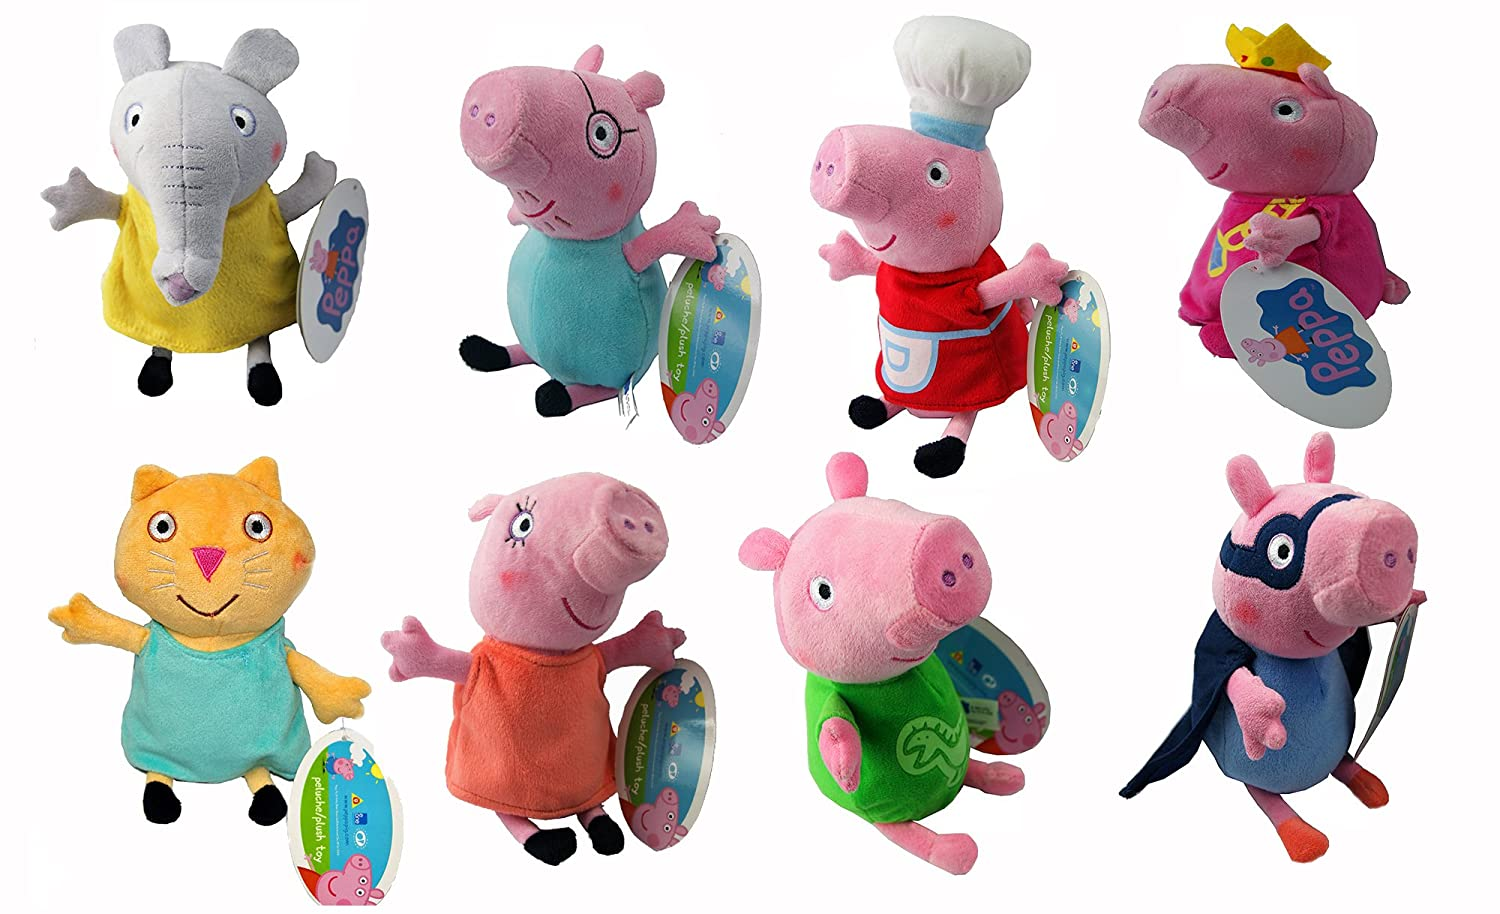 Amazon.com: Adorable Original Peppa Pig Family & Friends Plush Toys, 8 Different Characters,8 assorted peppa pig soft toy (Daddy Pig): Toys & Games